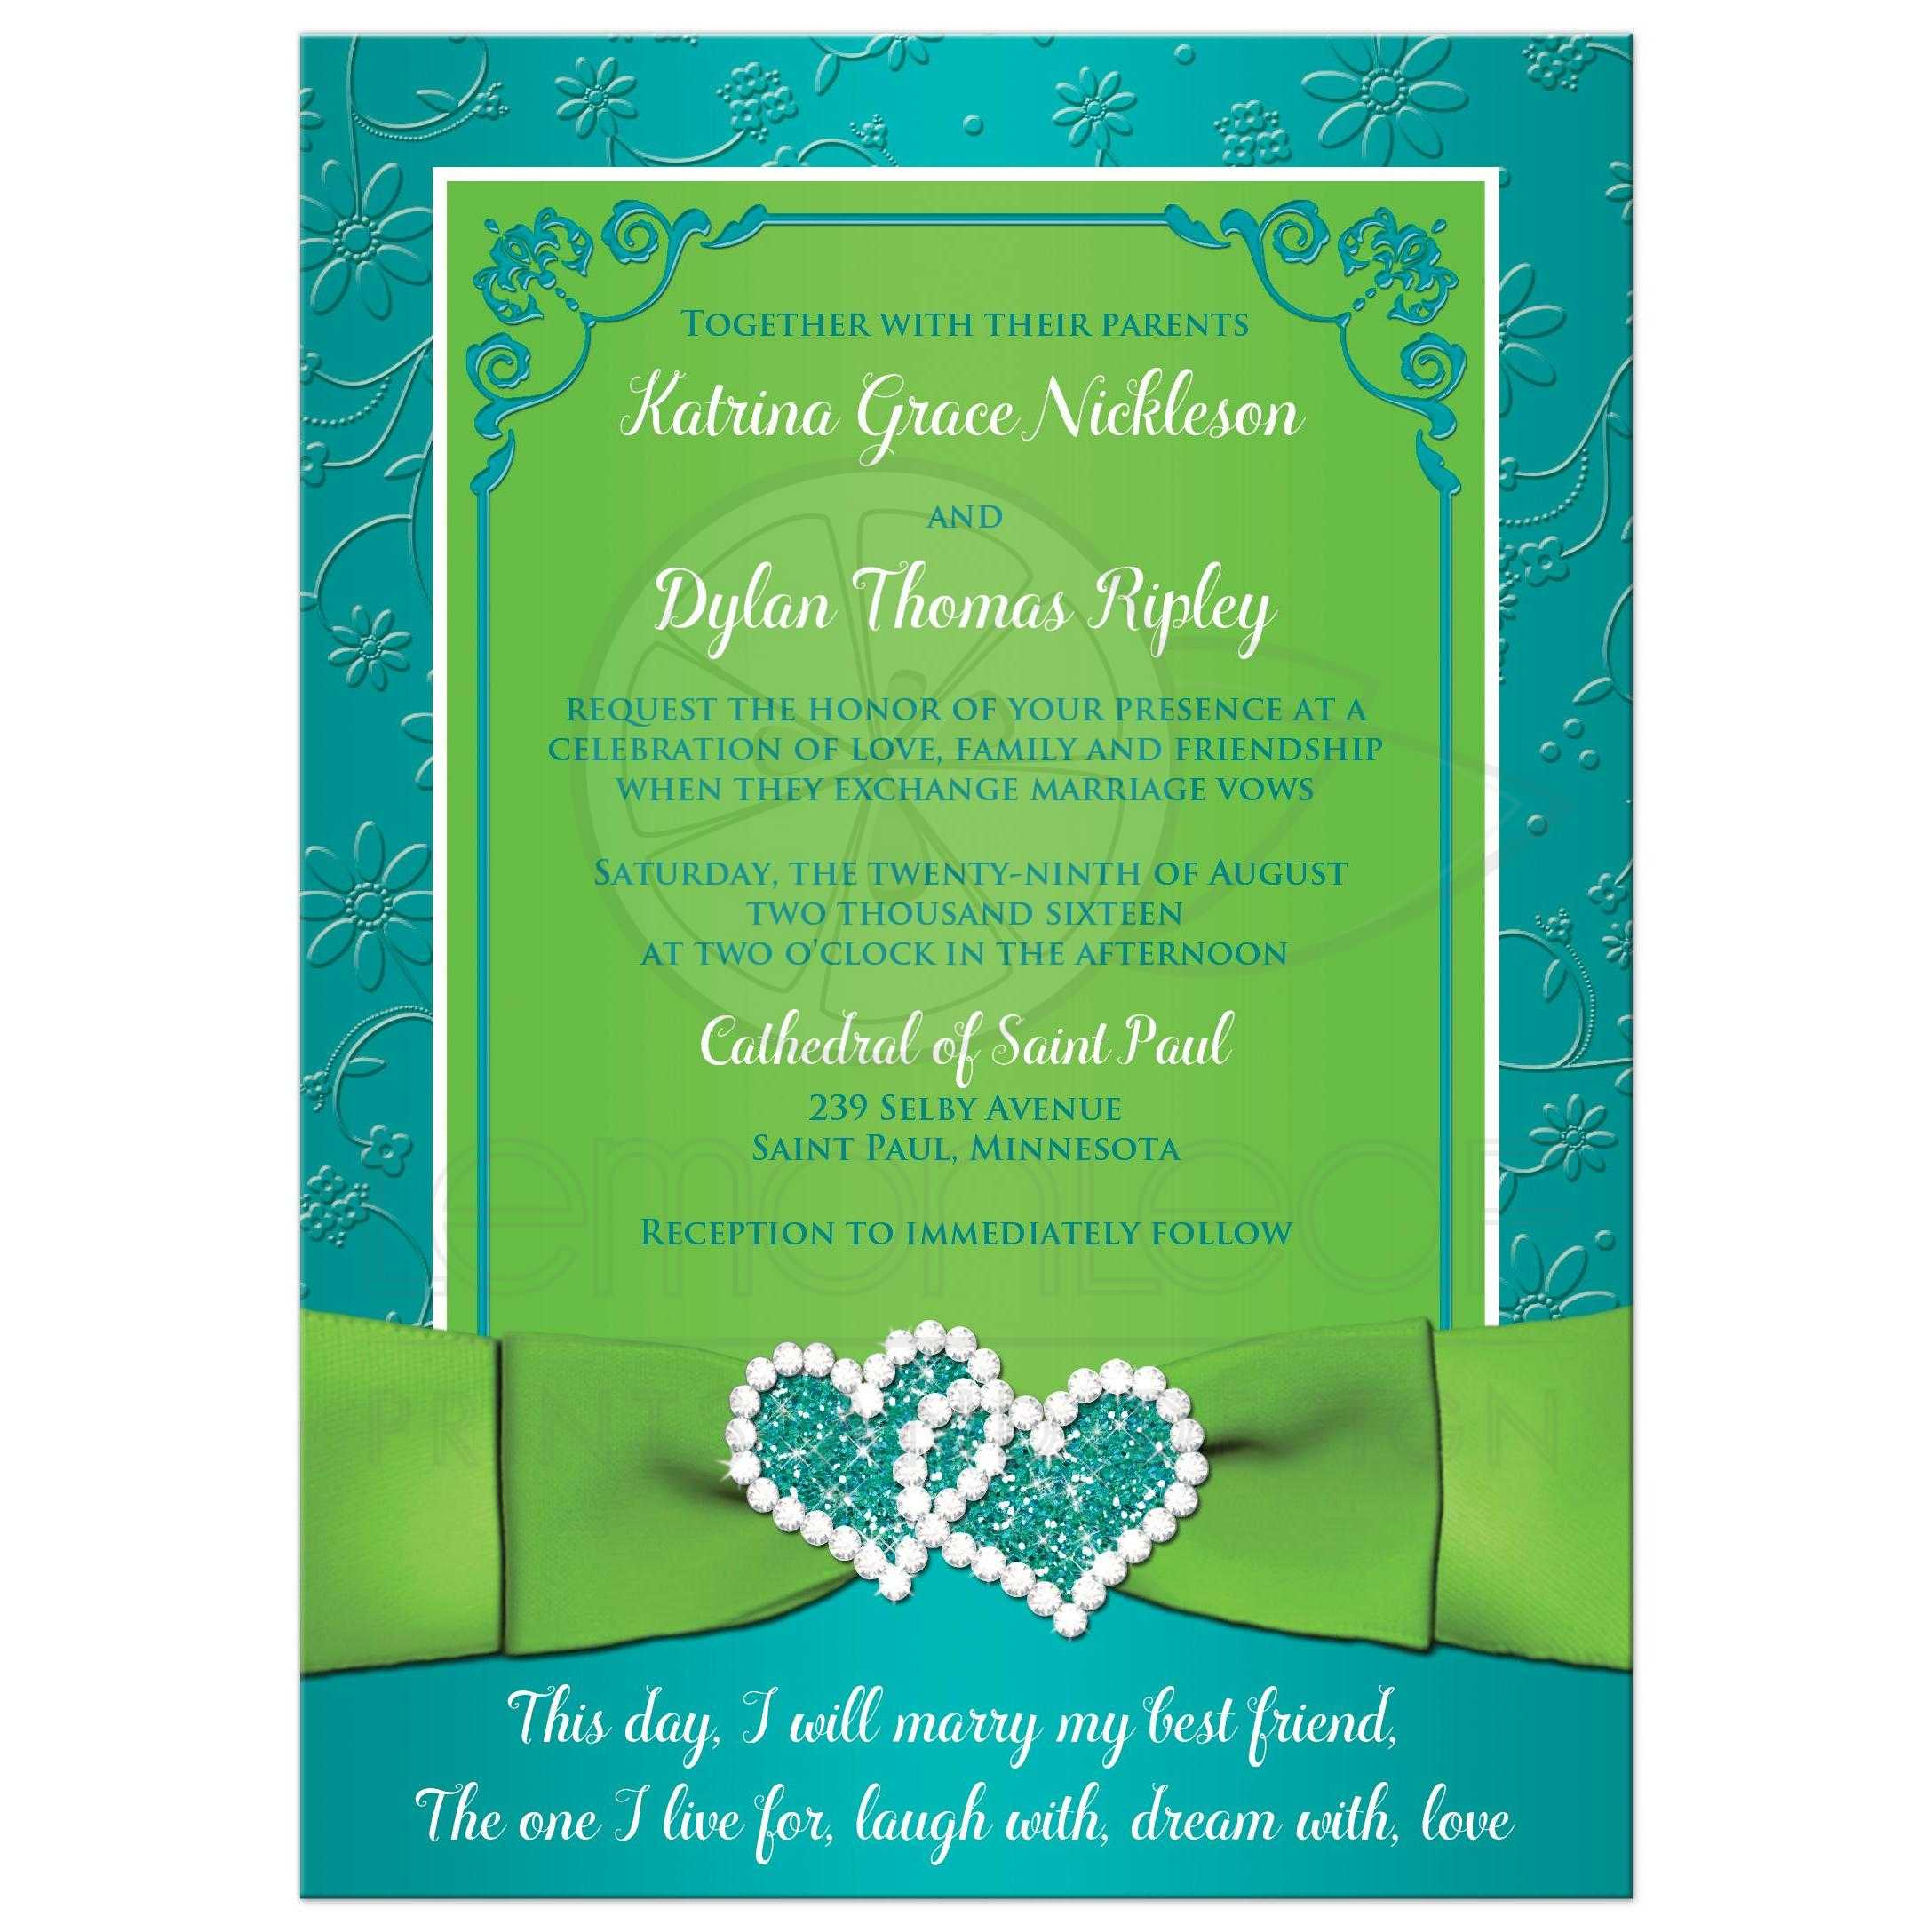 Great Photo Wedding Invite In Turquoise Blue Lime Green And White With Ribbon